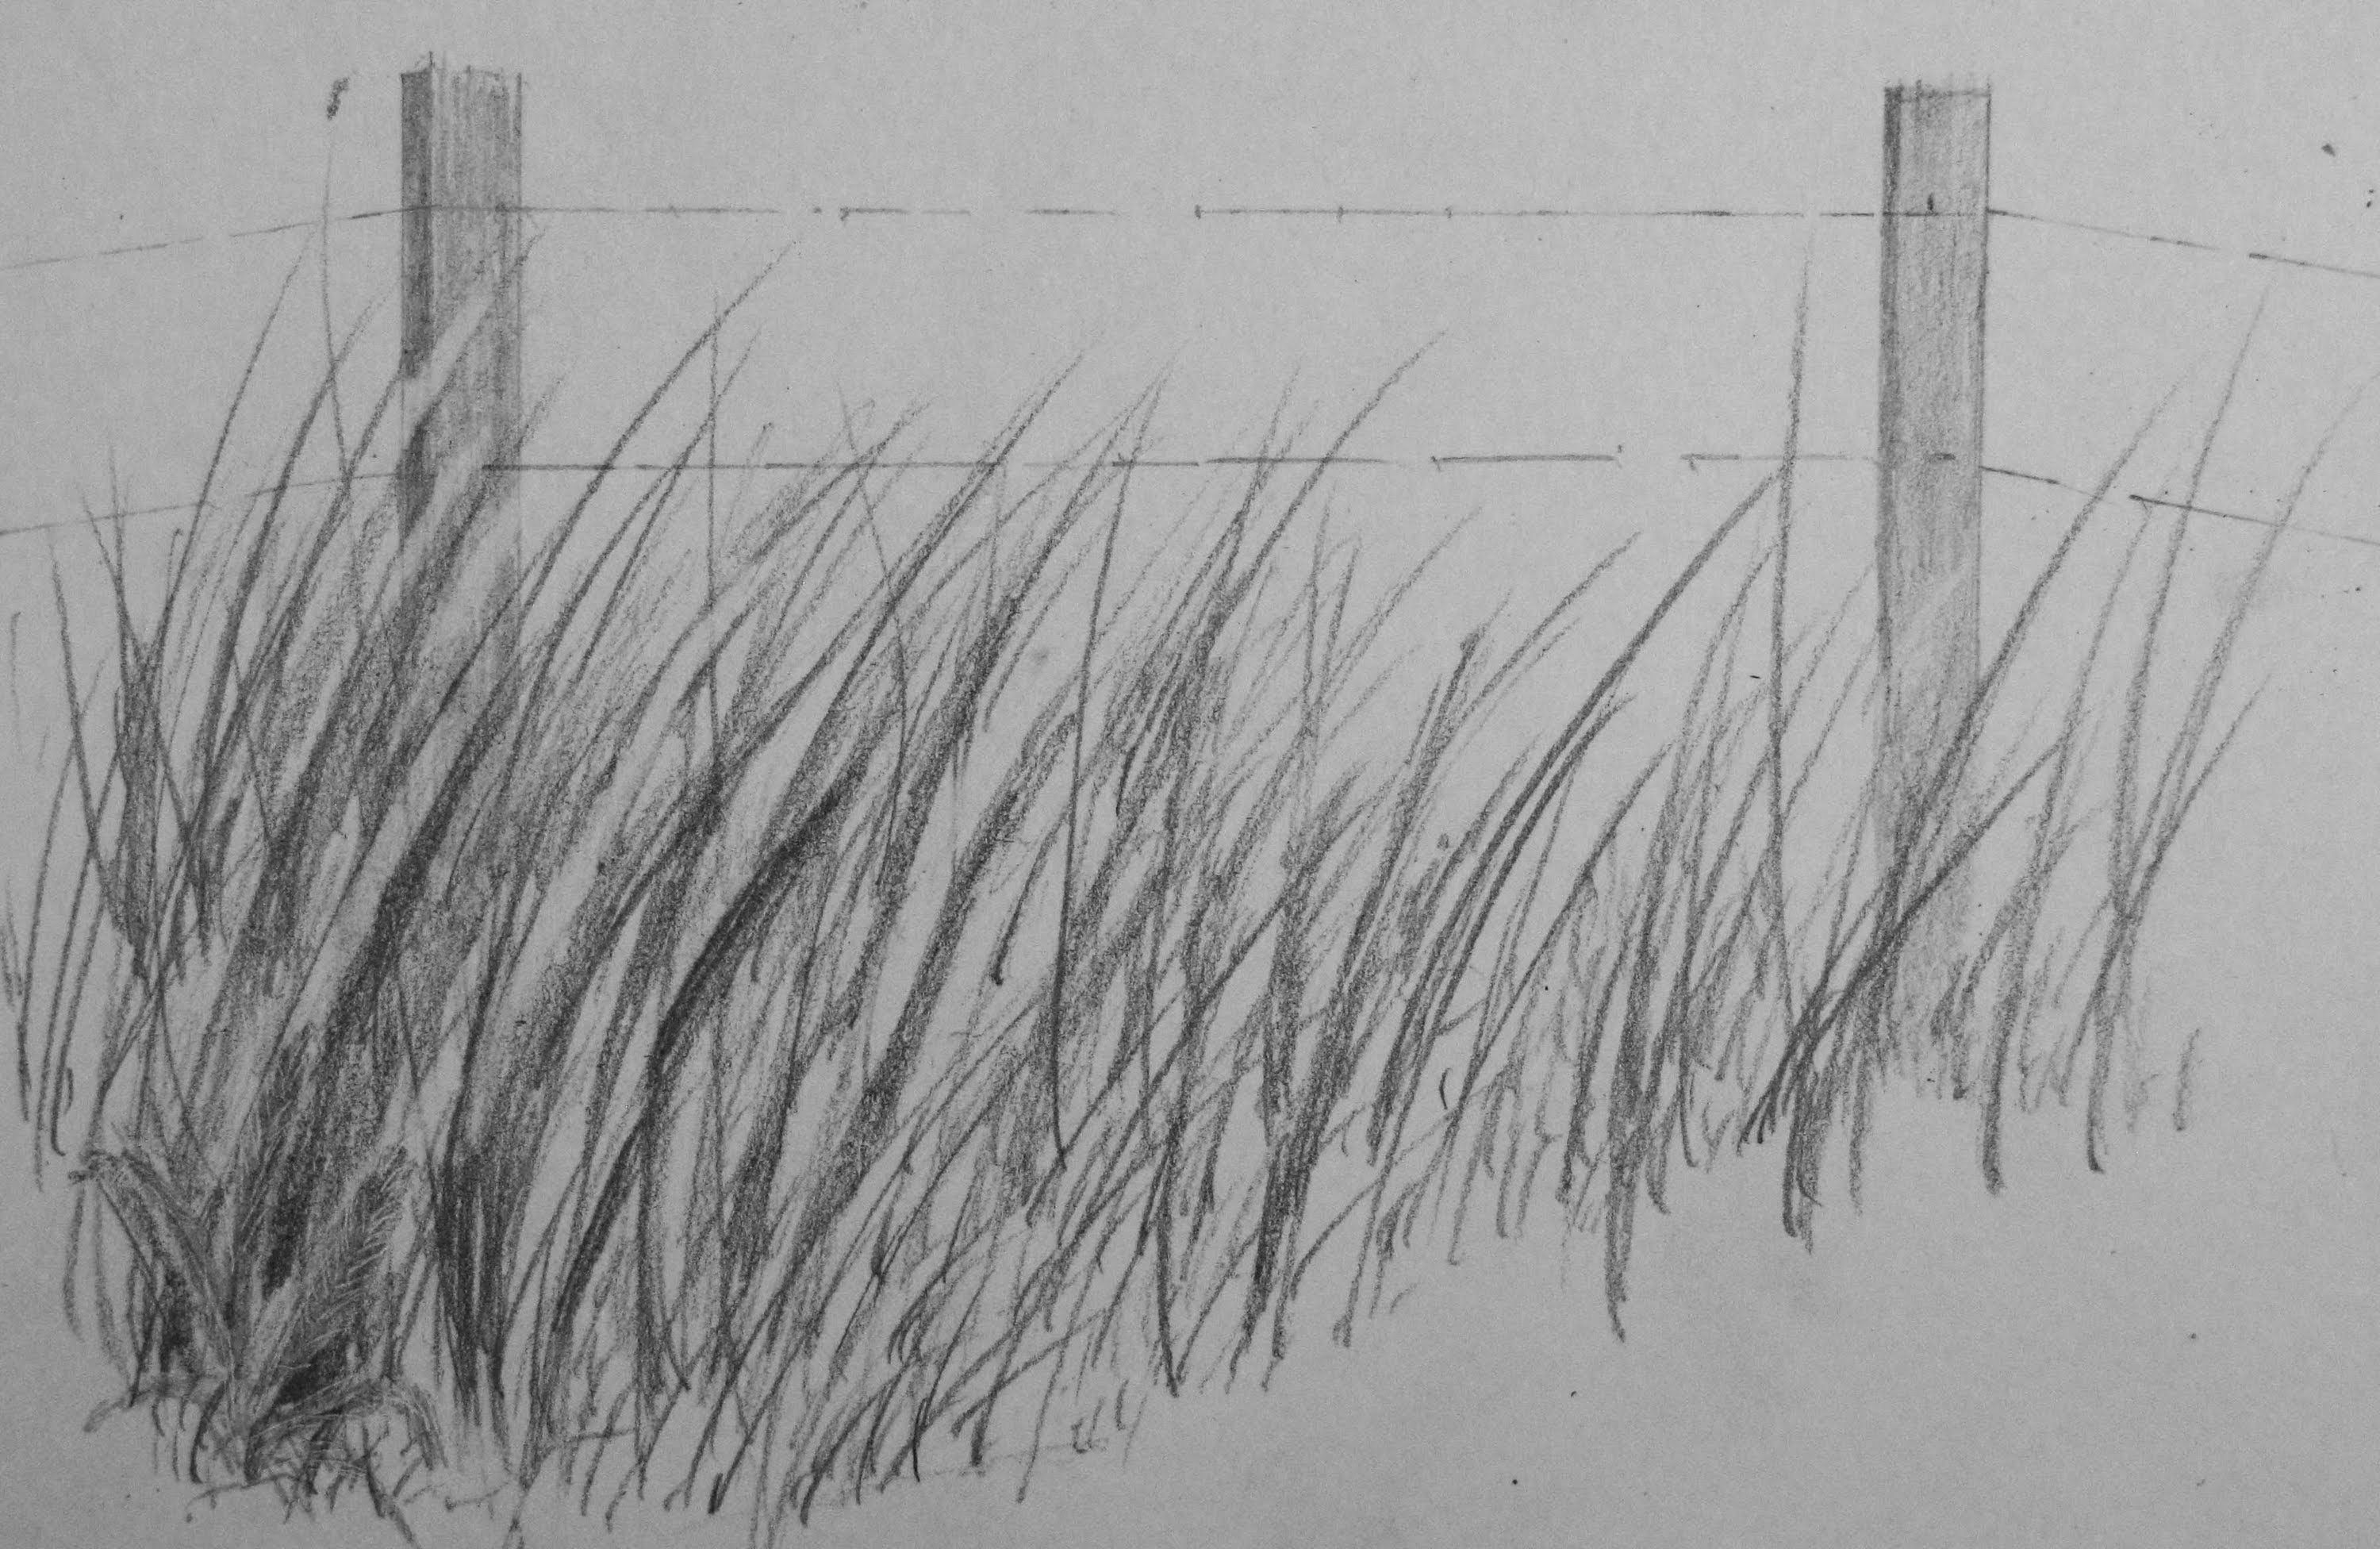 How To Draw Realistic Tall Grass Realistic Drawings Grass Drawing Landscape Drawings